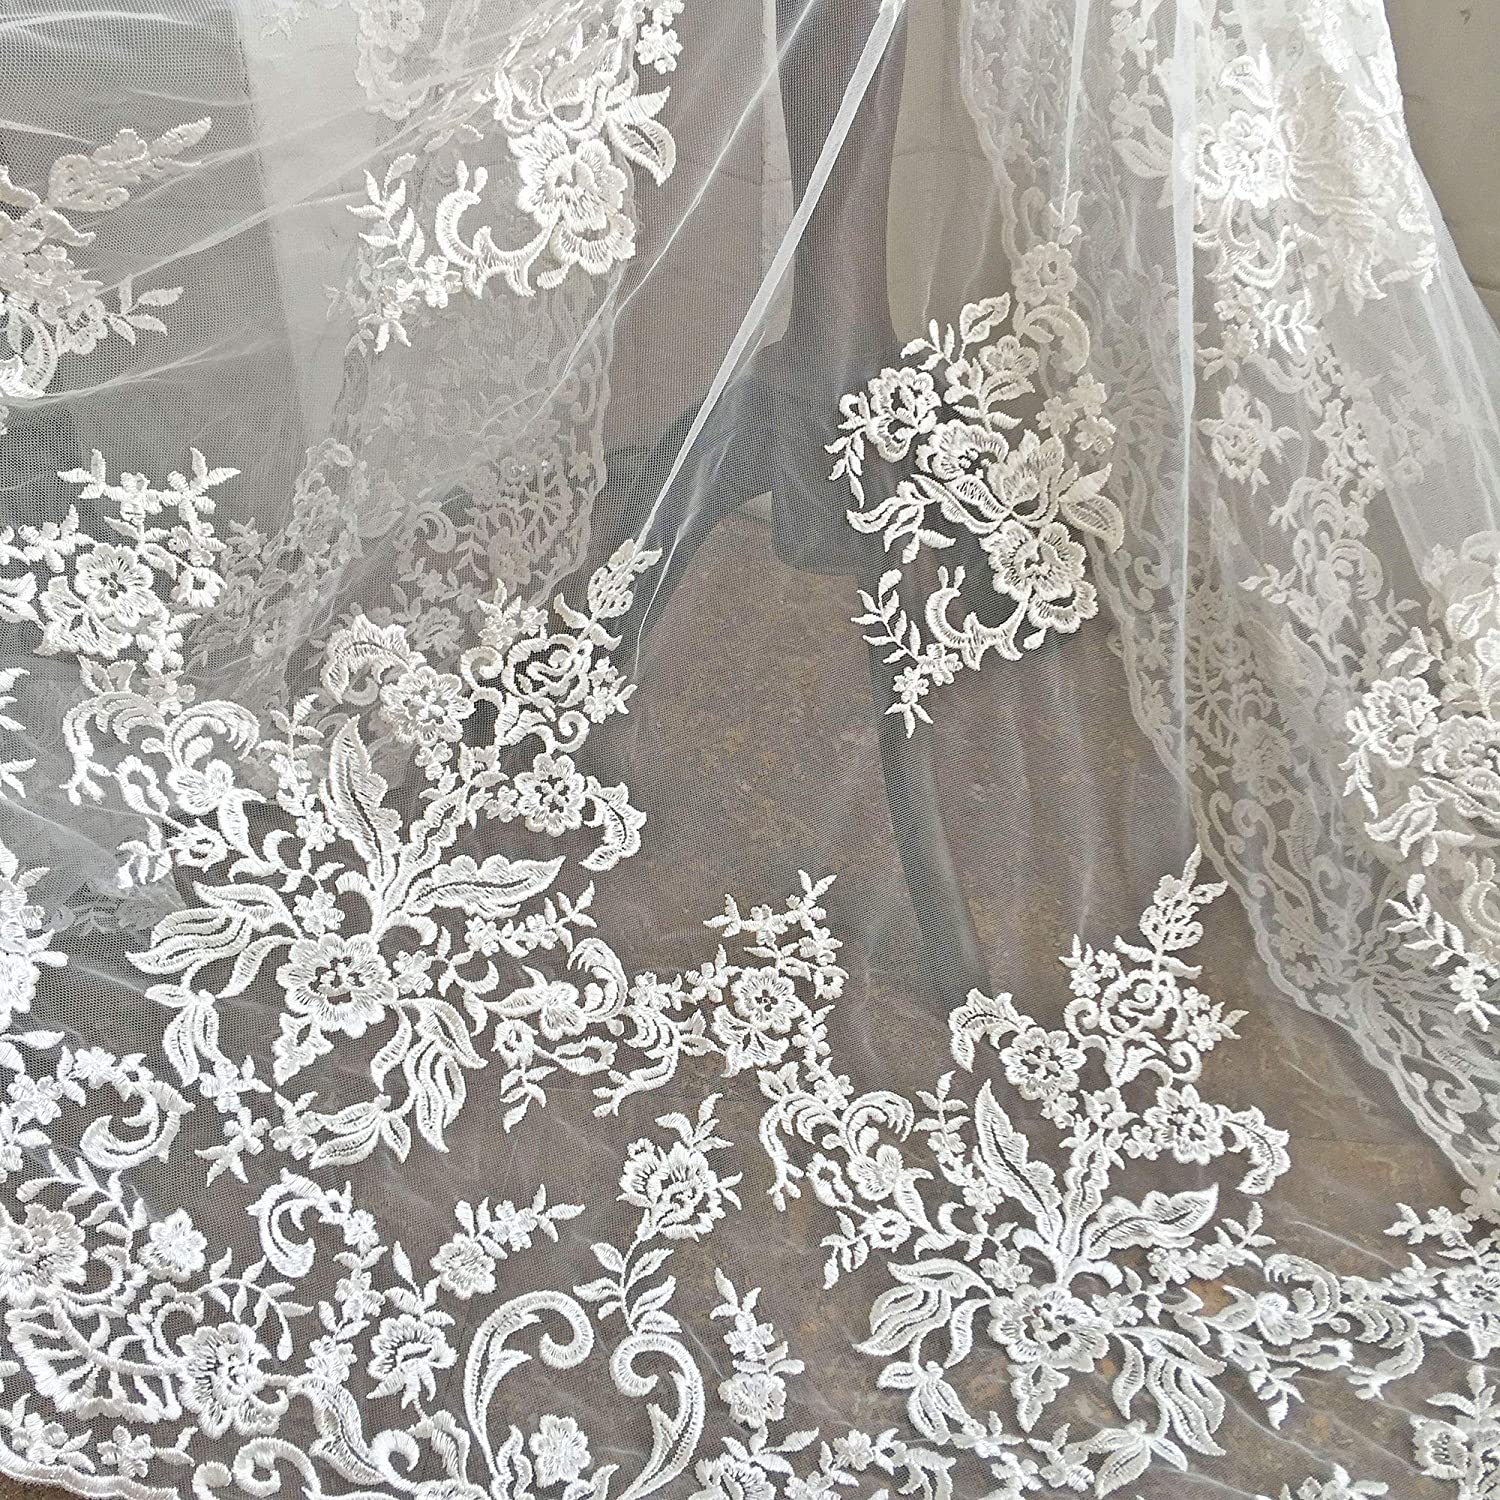 Veil lace B00207 Embroidered lace White Lace French Lace Off White lace fabric Lingerie Lace Bridal lace Wedding Lace